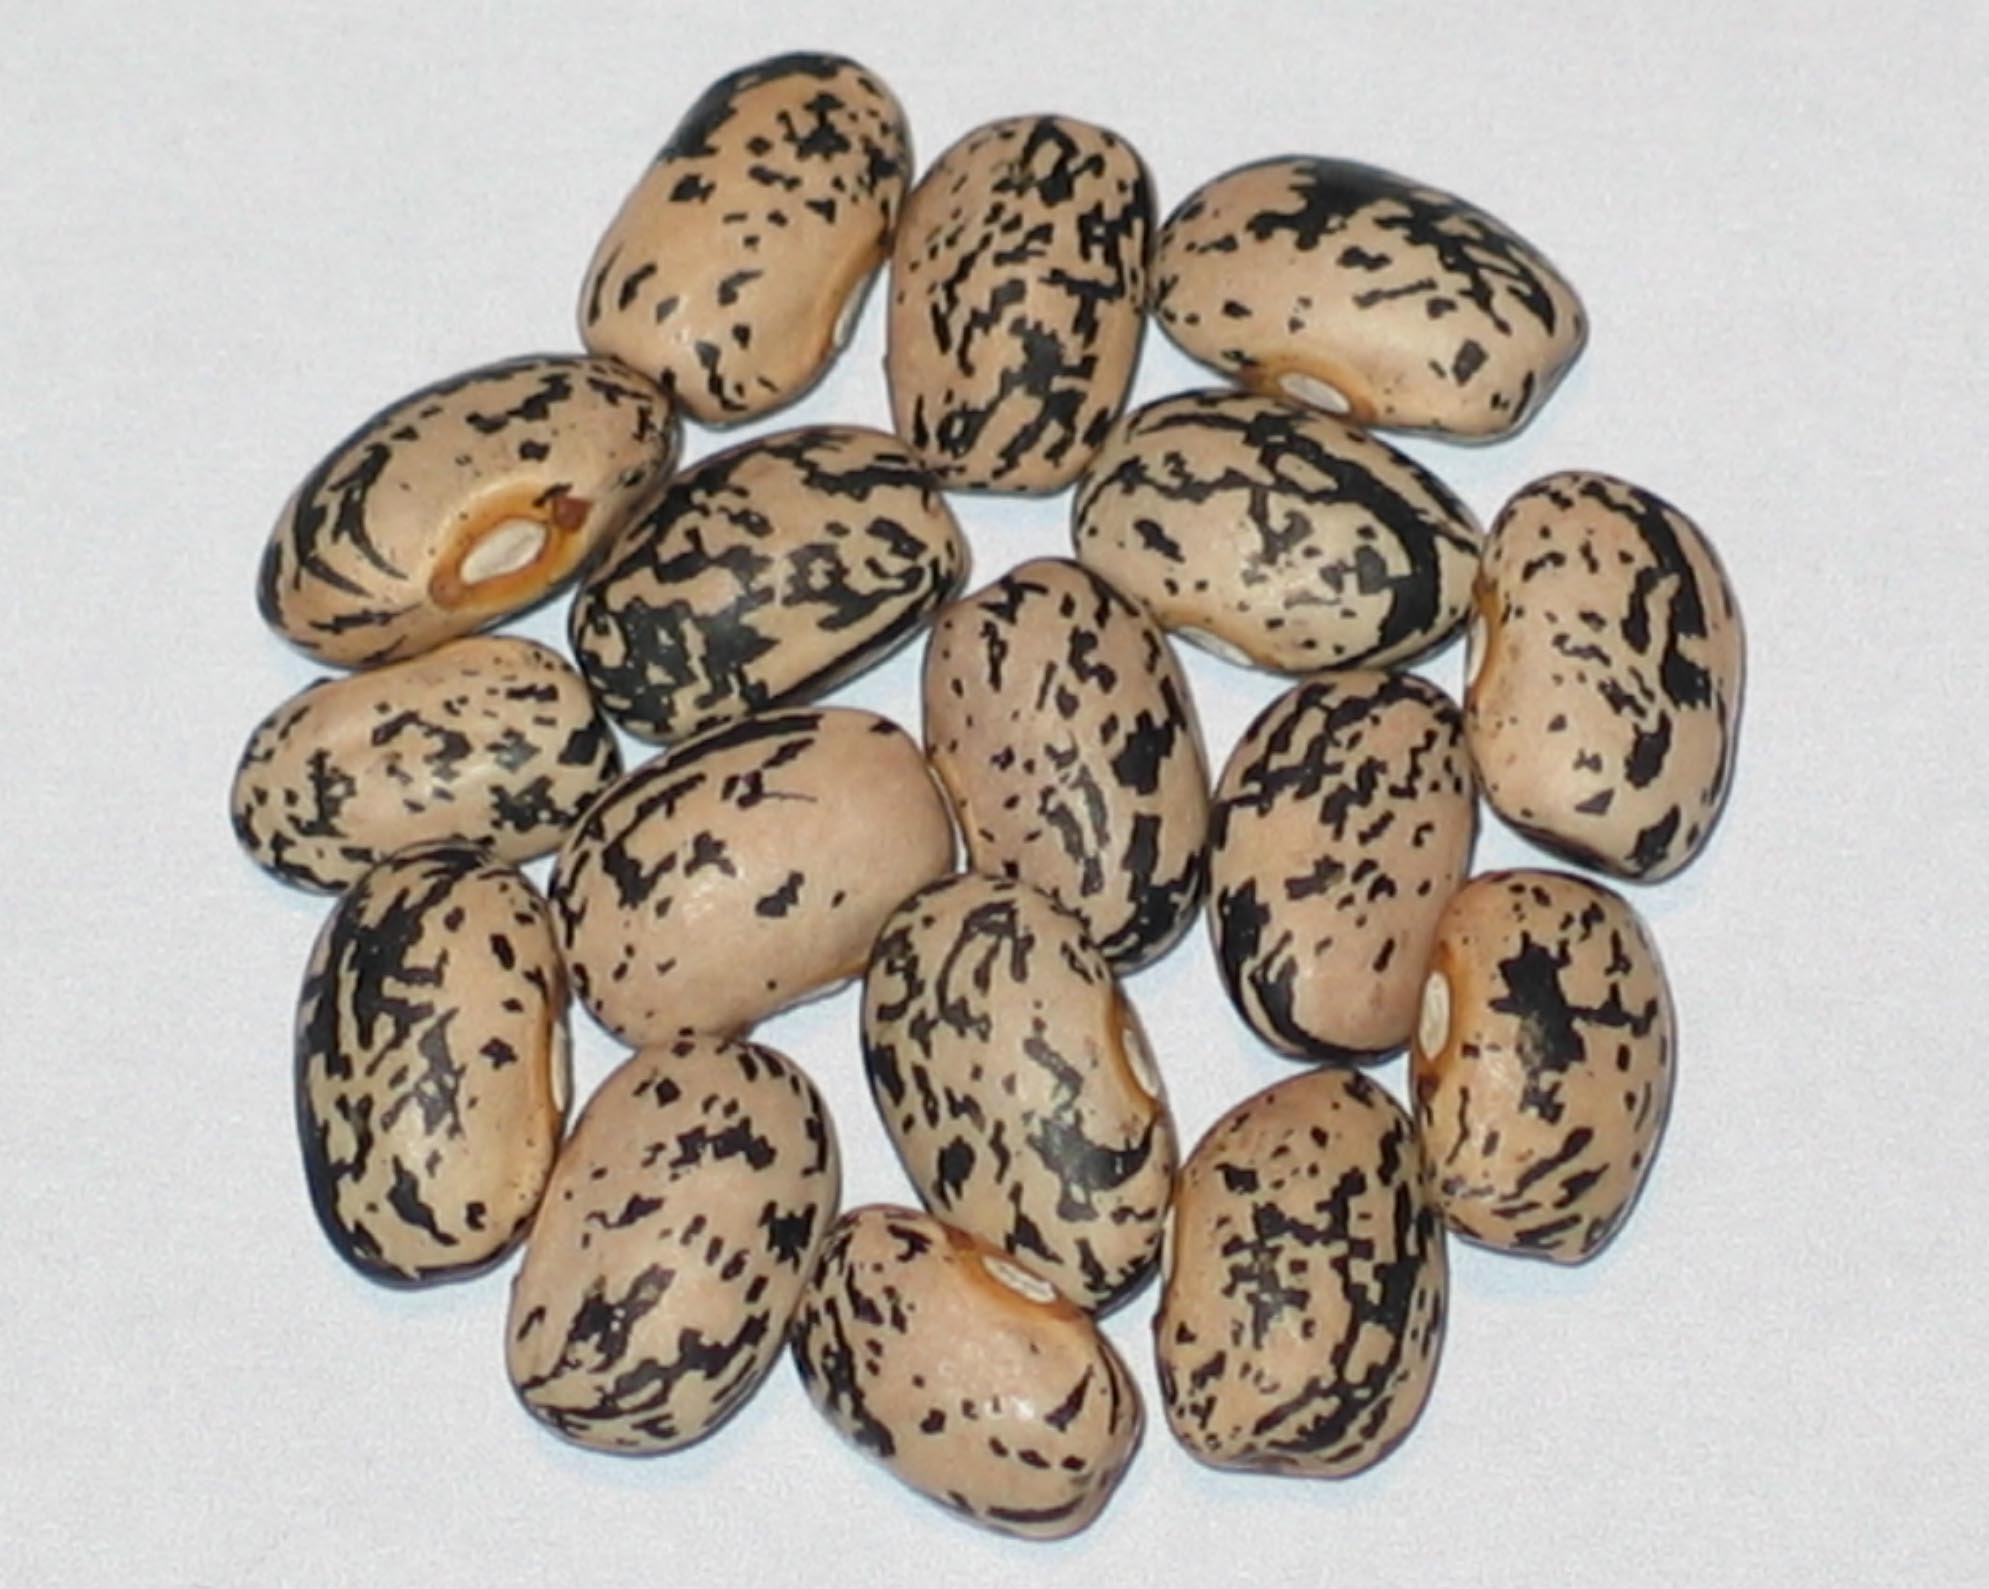 image of Refugee beans